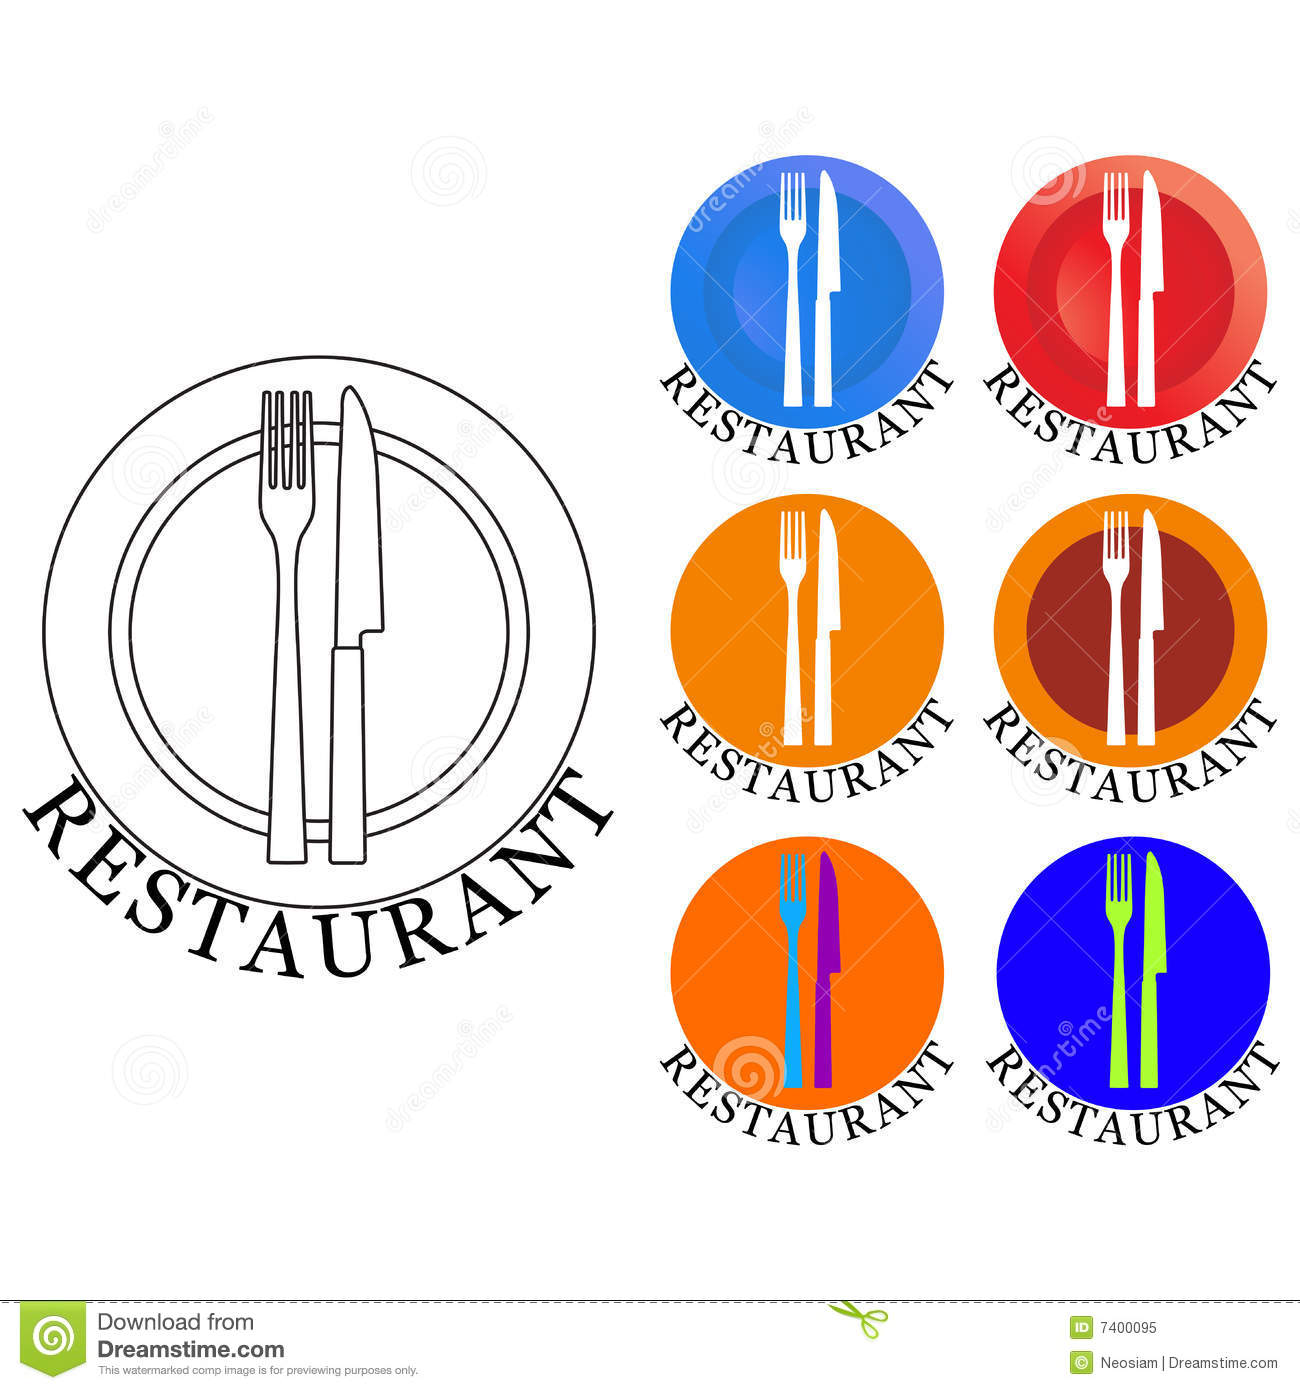 Restaurant Logo Royalty Free Stock Photo - Image: 7400095